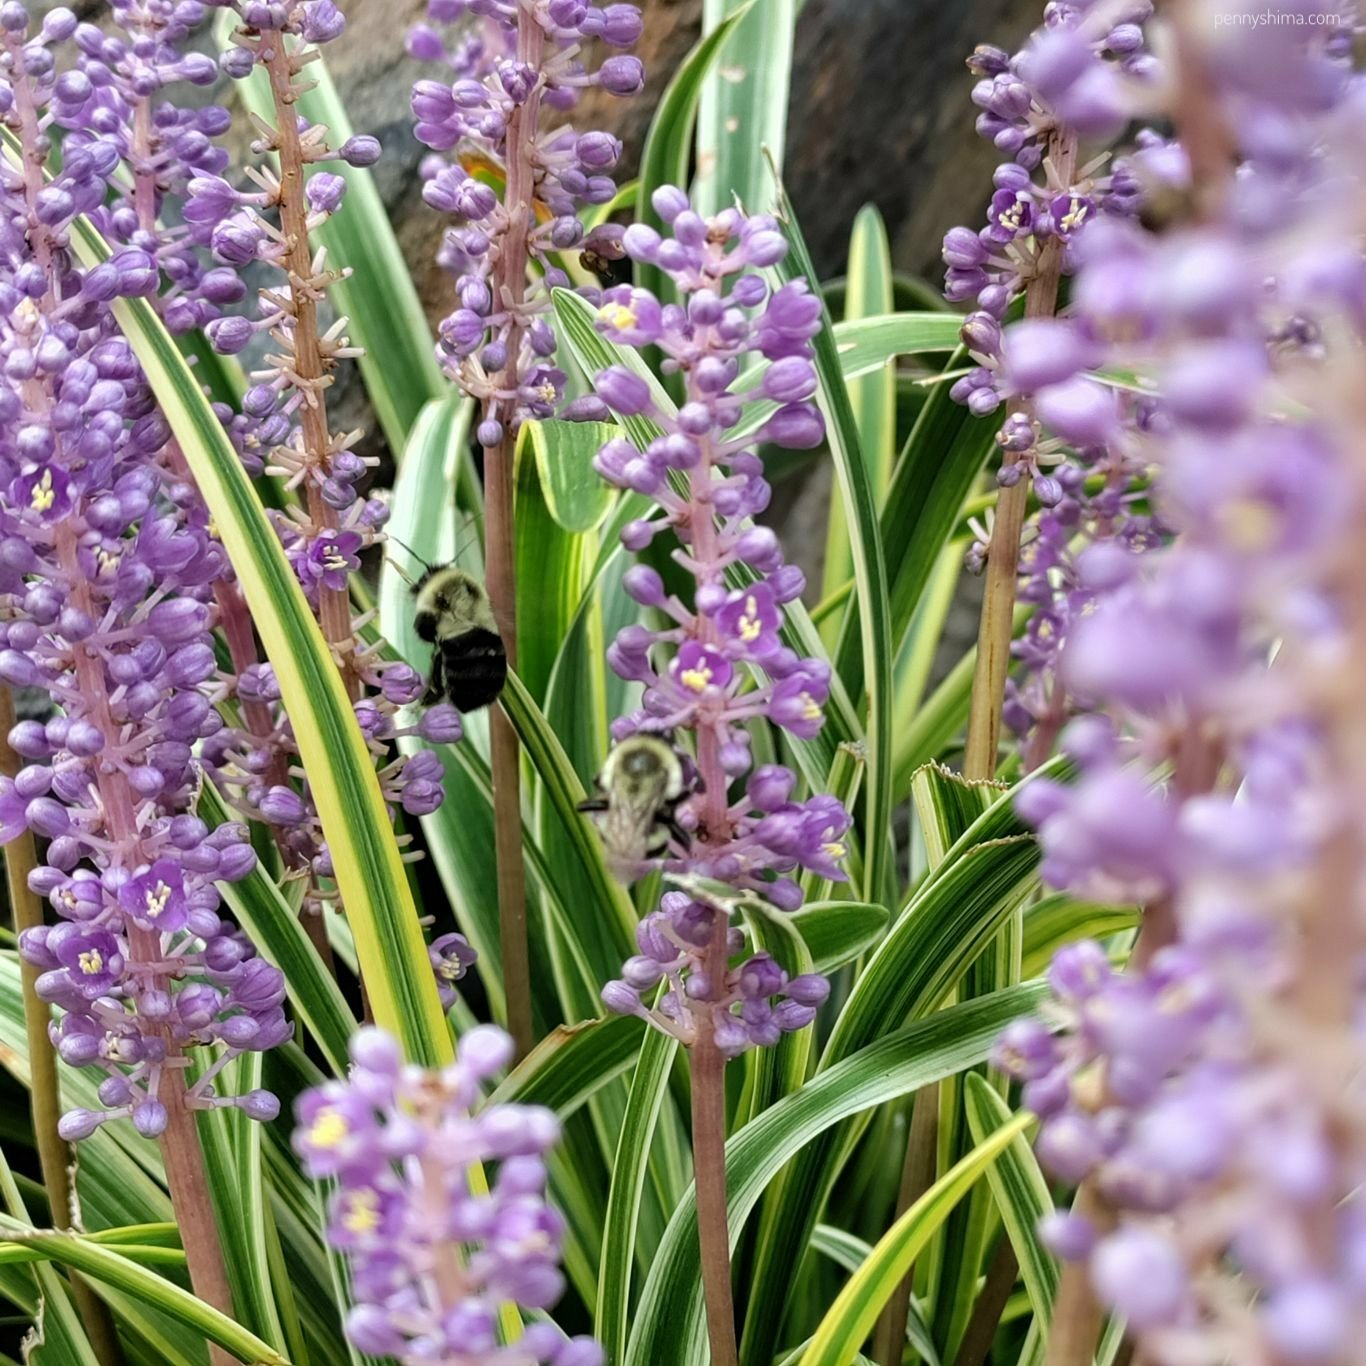 Ornamental grass with purple flowers. Two bees are enjoying the pollen.